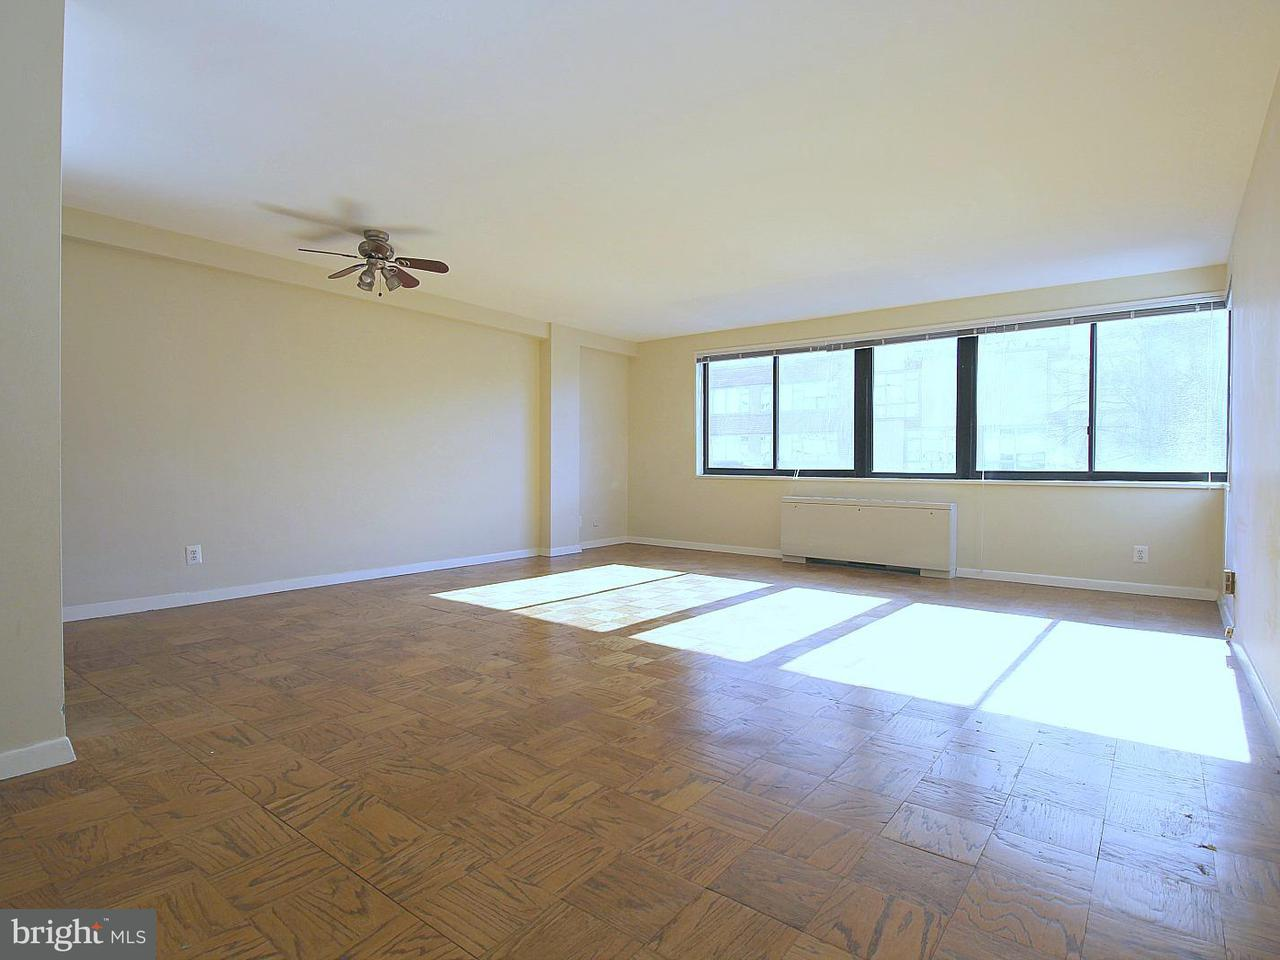 Condominium for Sale at 1601 18th St NW #516 Washington, District Of Columbia 20009 United States